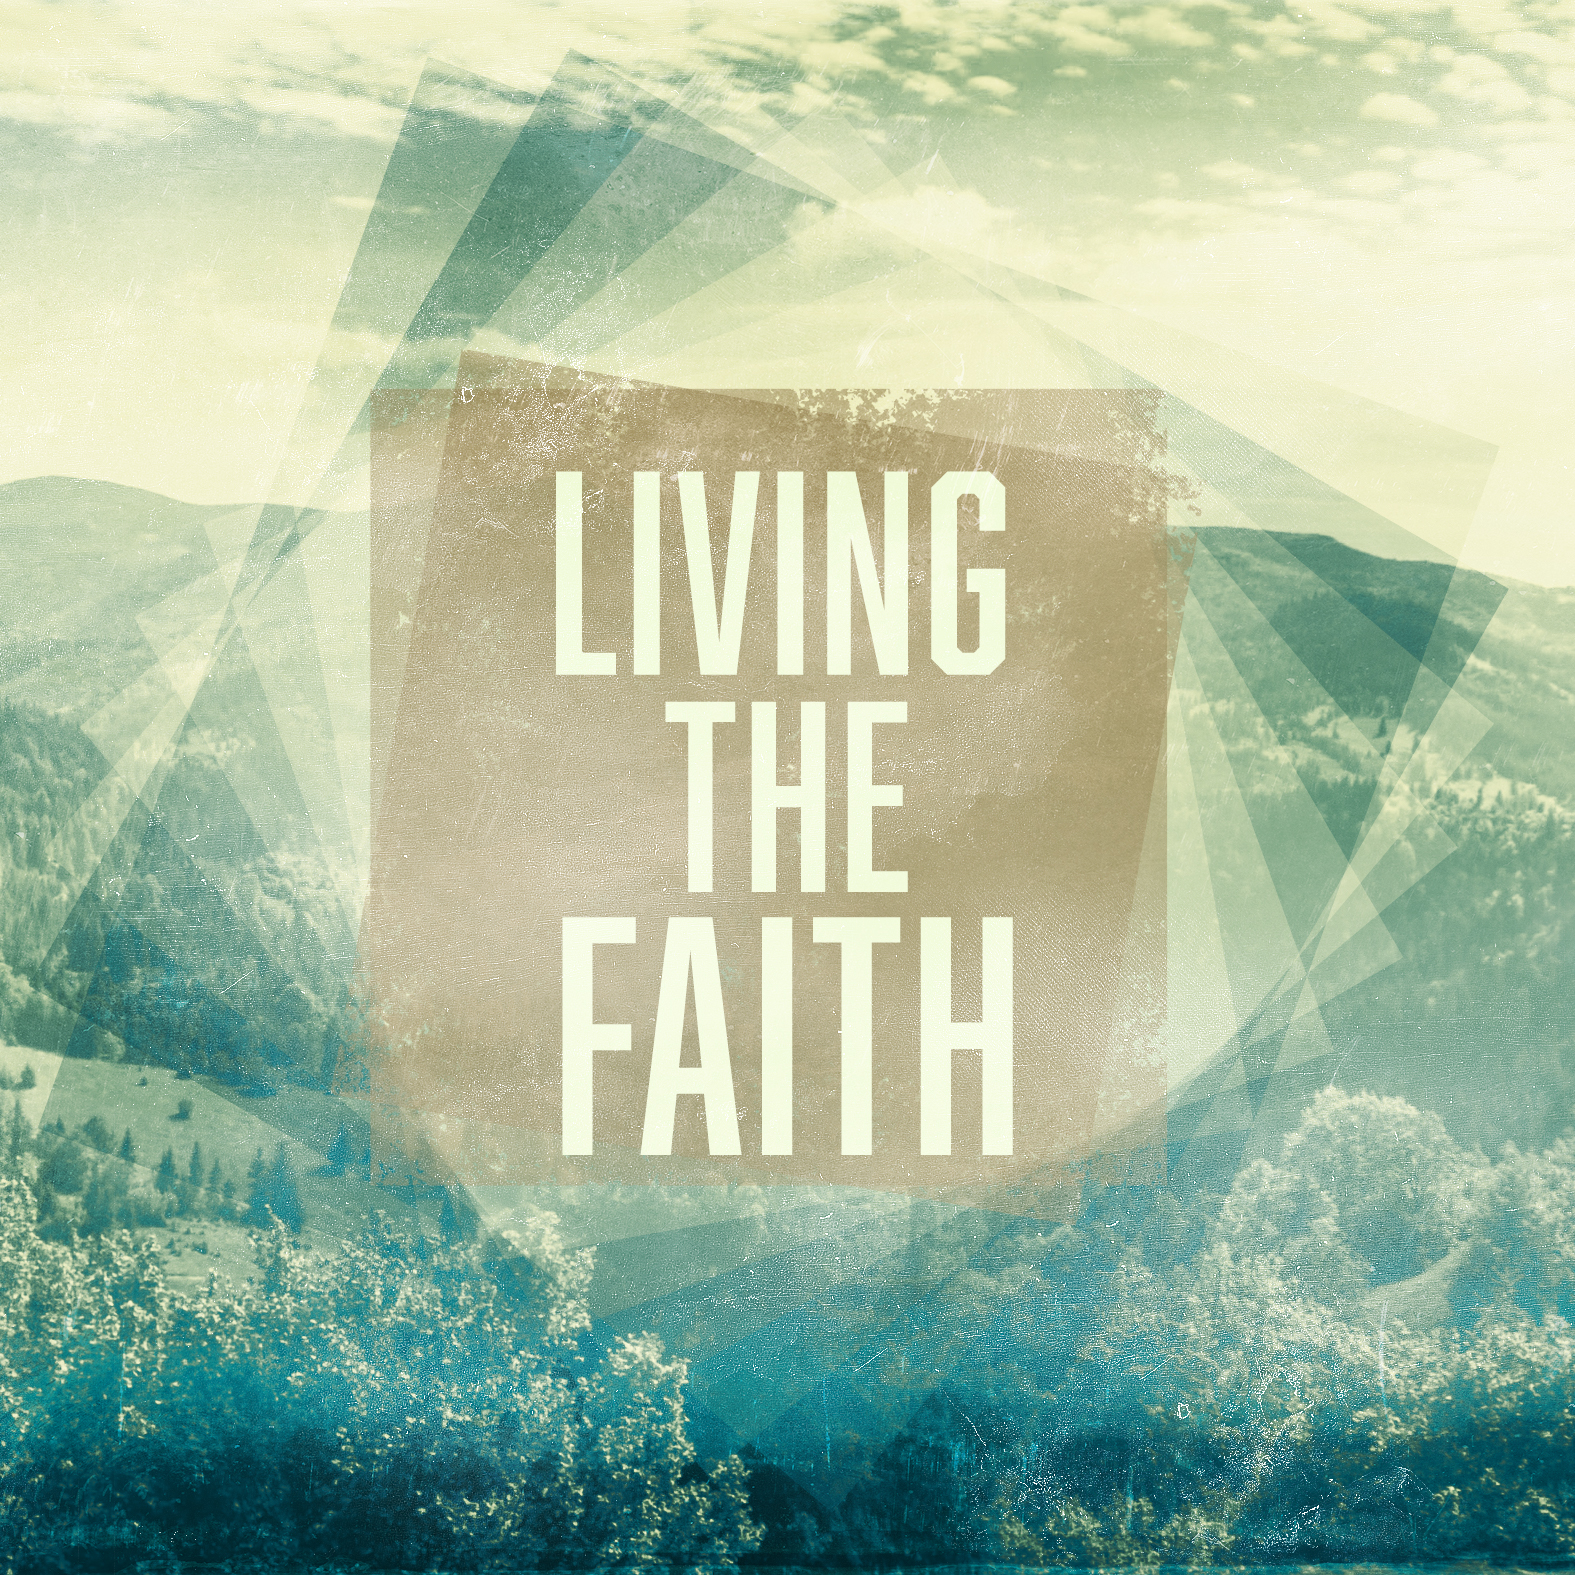 Living the faith - Fellowship HallThis medium-sized, multi-generational class aims for studies that apply God's word to the joys and challenges of daily living. Most studies last four-six weeks and include a short video followed by class discussion.